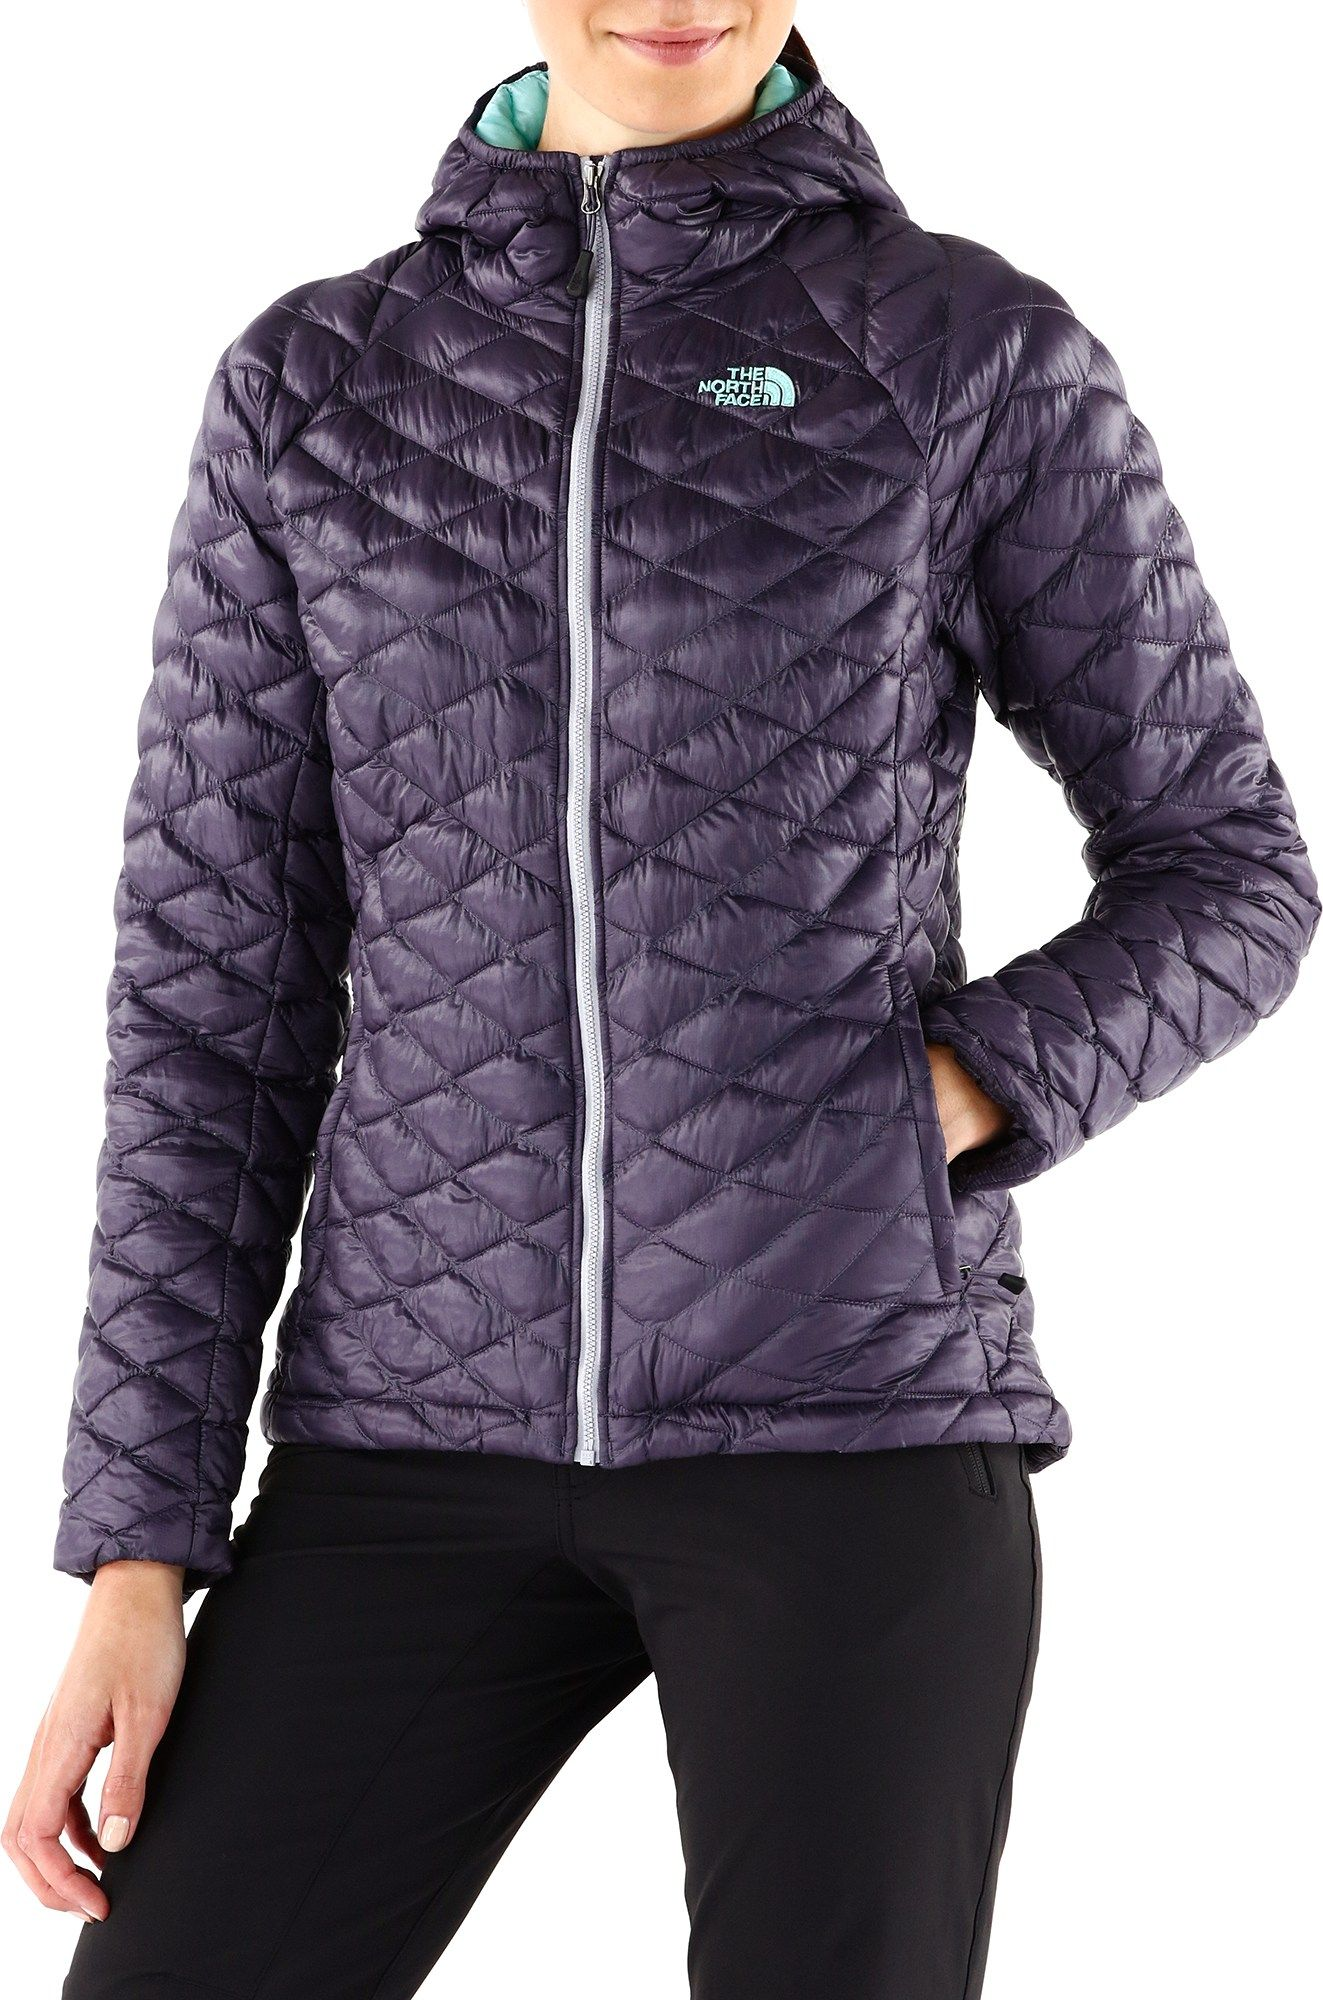 The North Face Thermoball Hoodie Jacket Women S Rei Co Op Hoodie Jacket Women Jackets For Women Hoodie Jacket [ 2000 x 1323 Pixel ]